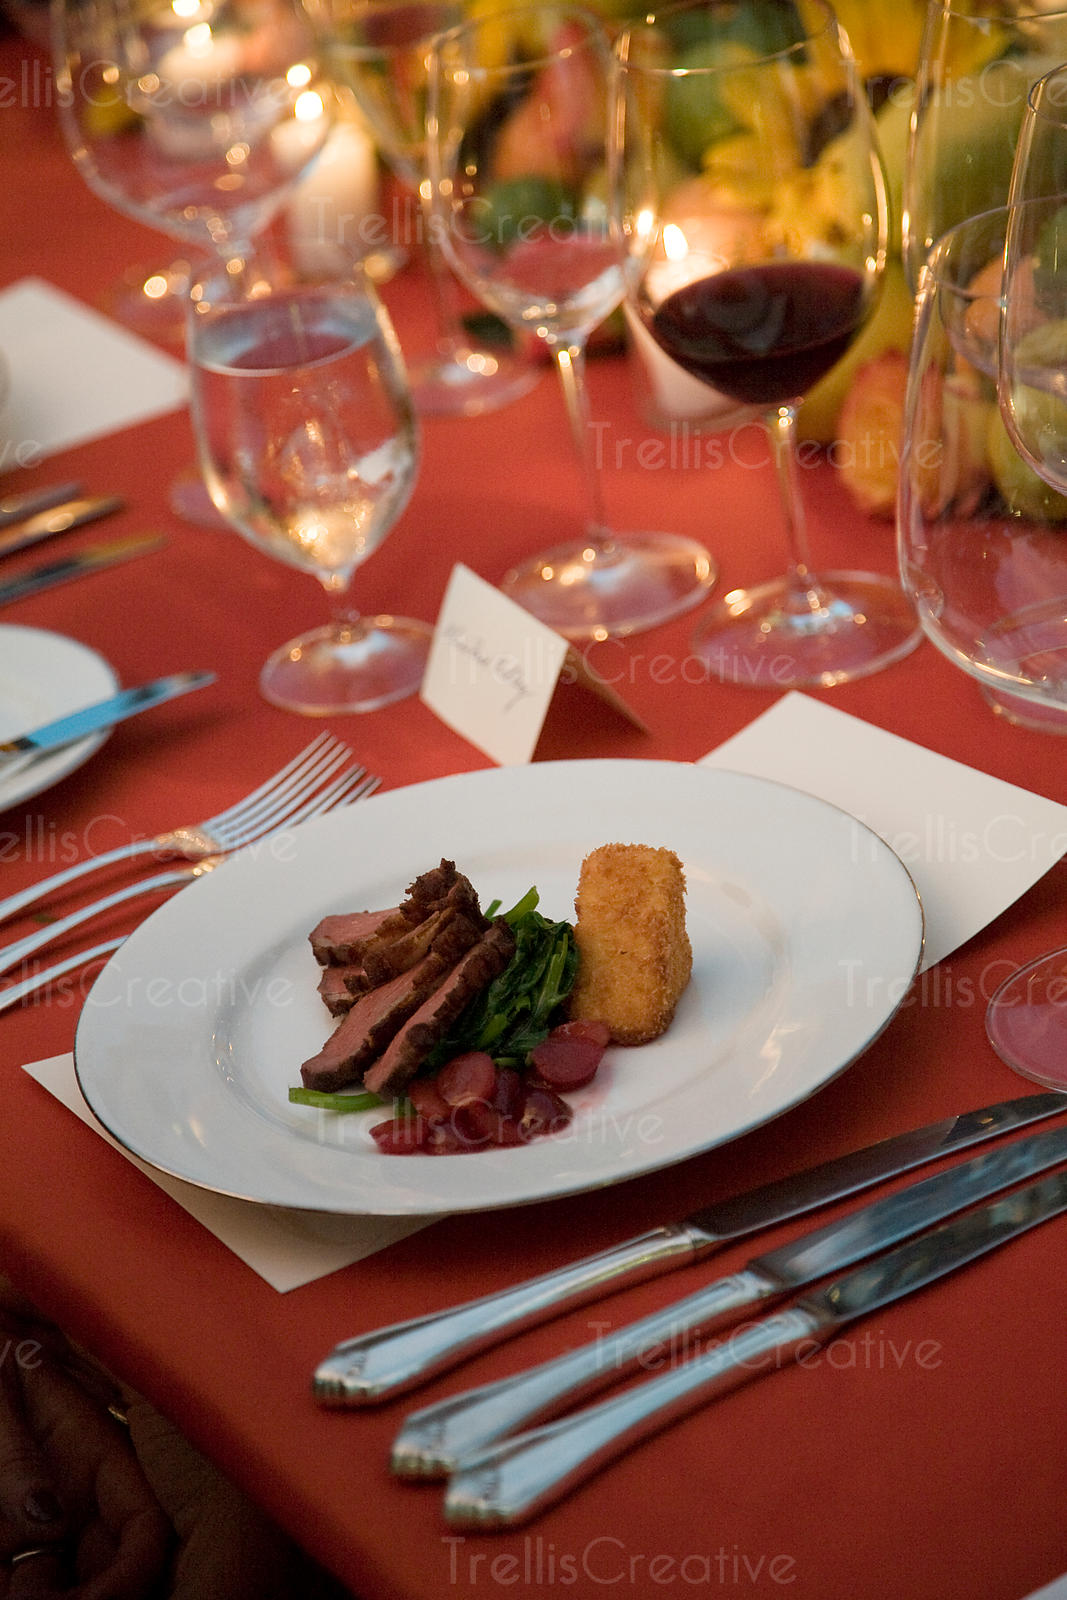 Rare beef filet with warm grapes and polenta served on a beautifully decorated table